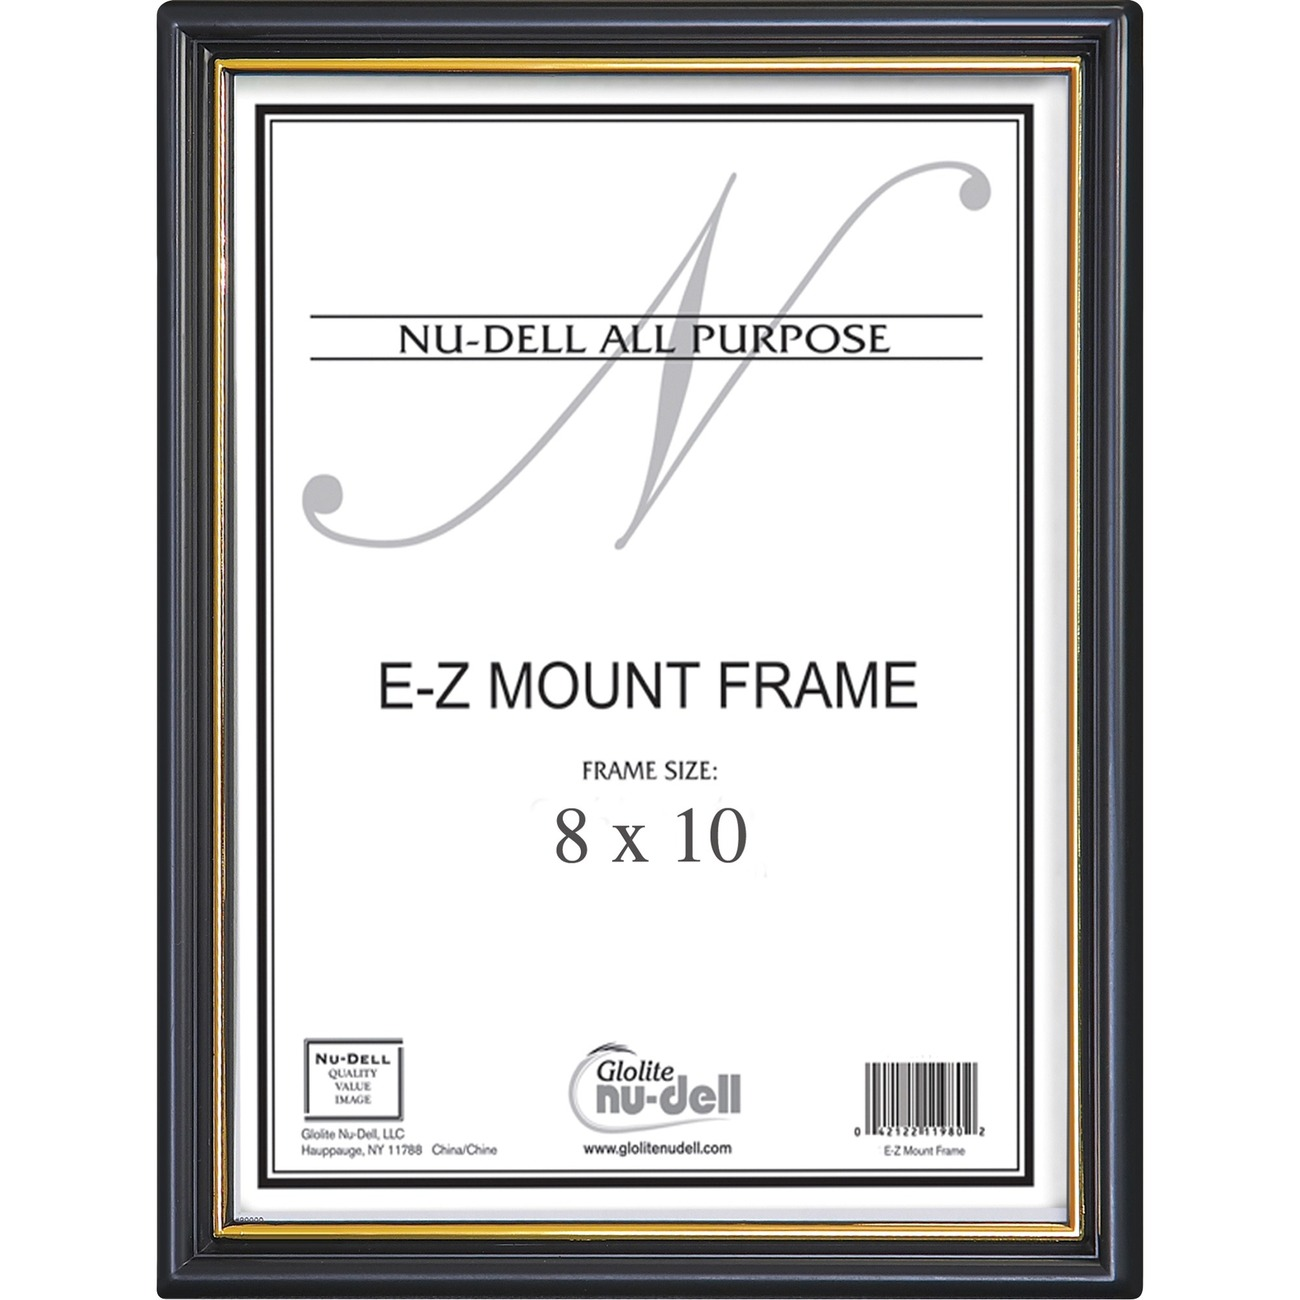 plastic wall frame features a gold stripe on the inside edge to highlight documents photographs and awards clear face is made of plastic